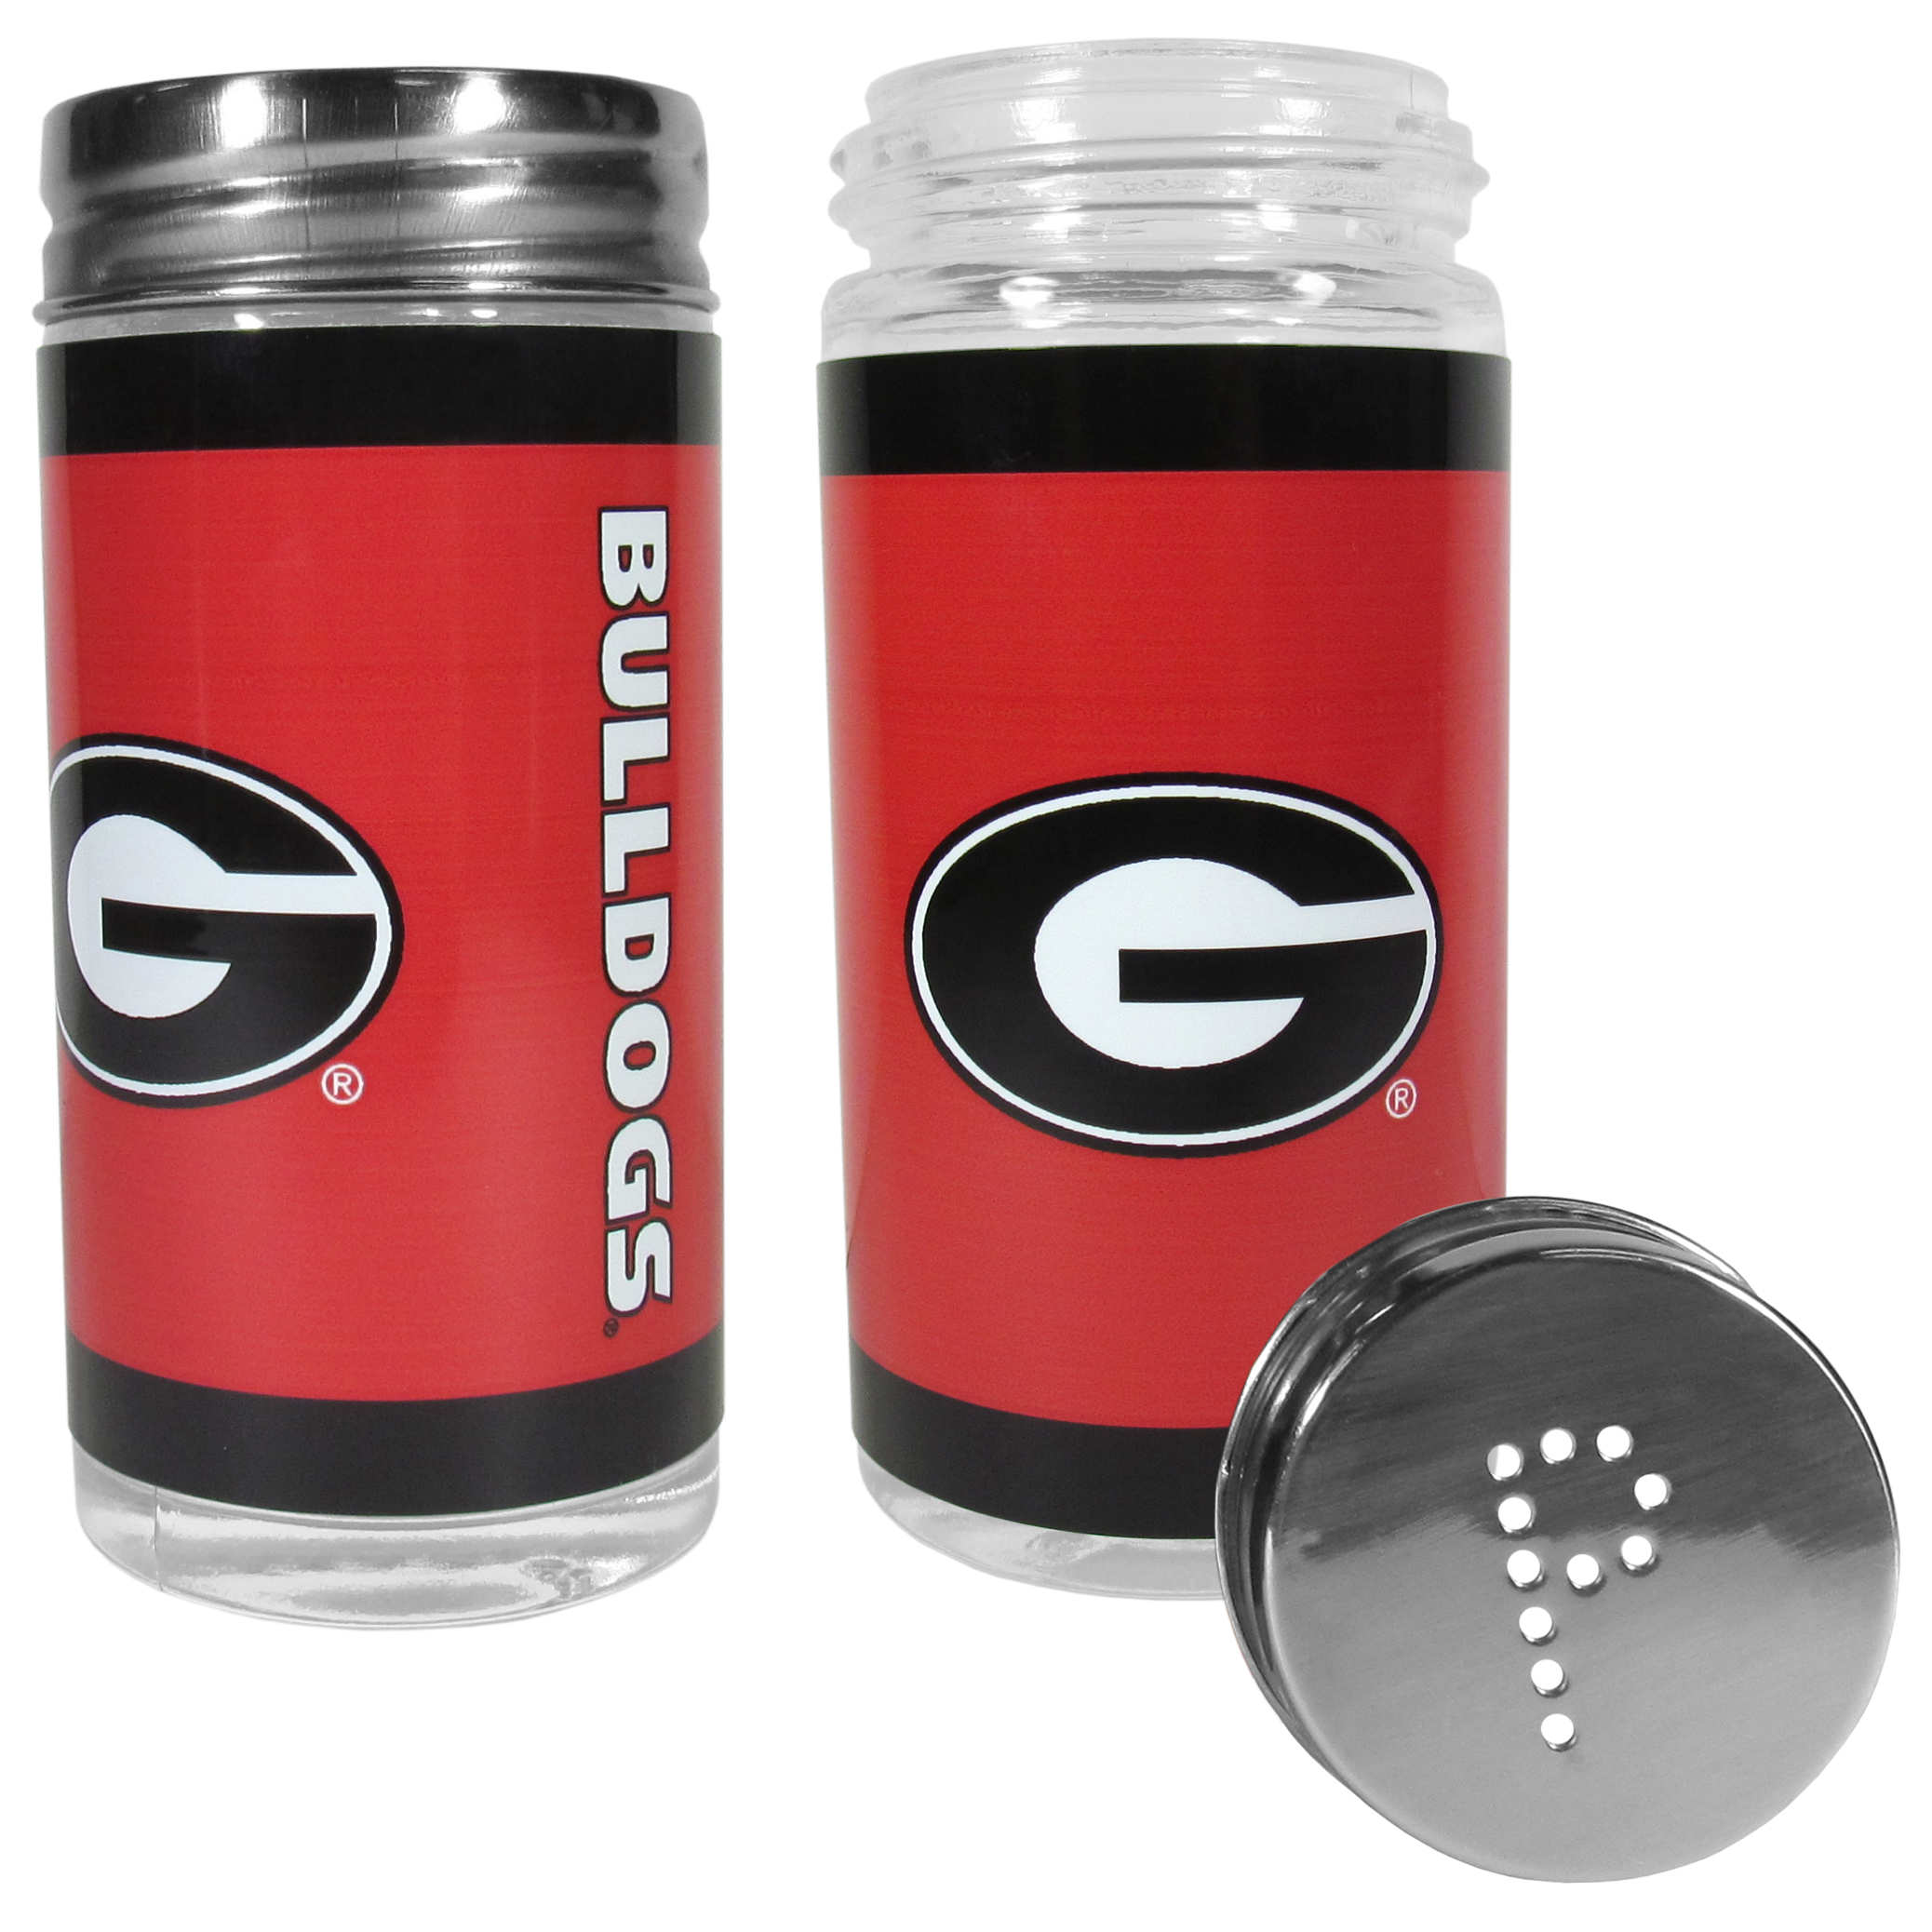 Georgia Bulldogs Tailgater Salt & Pepper Shakers - No tailgate party is complete without your Georgia Bulldogs salt & pepper shakers featuring bright team graphics. The glass shakers are 3.75 inches tall and the screw top lids have holes that spell out P and S. These team shakers are a great grill accessory whether you are barbecuing on the patio, picnicing or having a game day party.